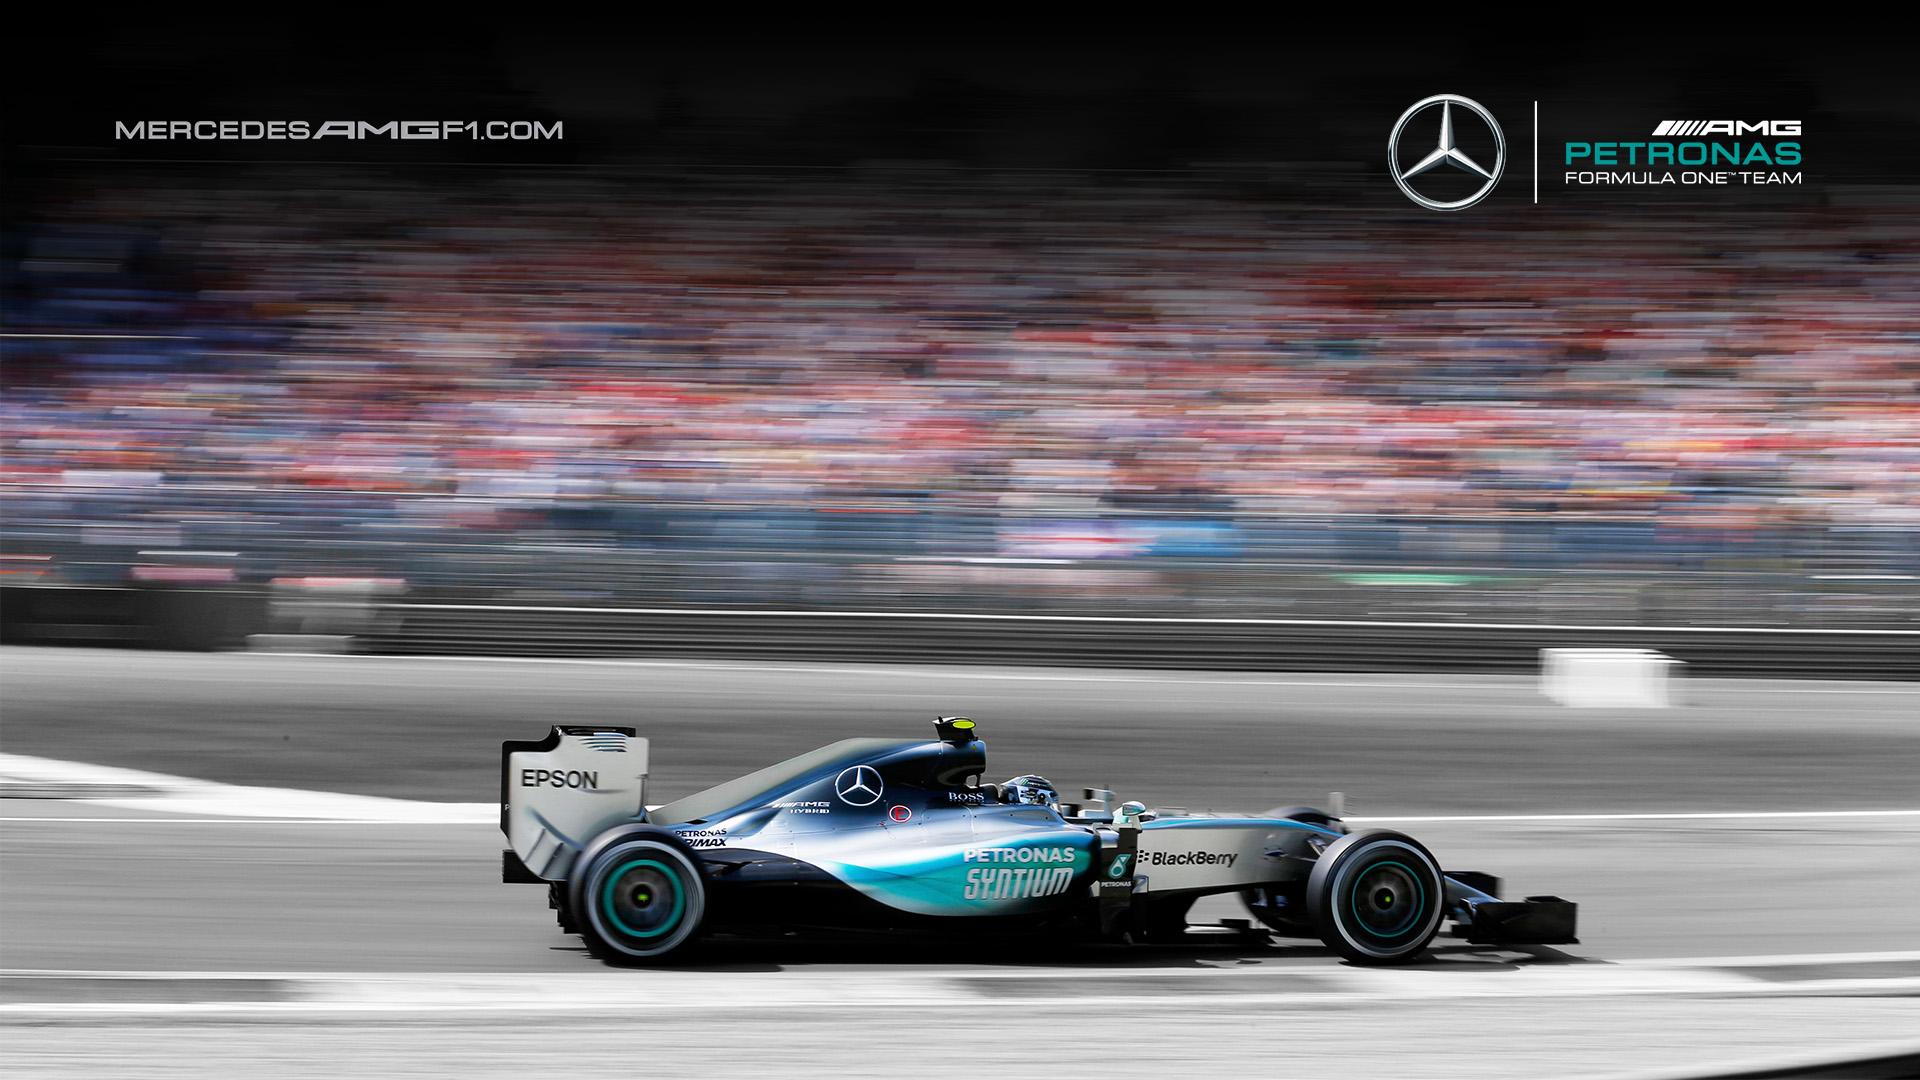 Mercedes w08 f1 wallpaper 9